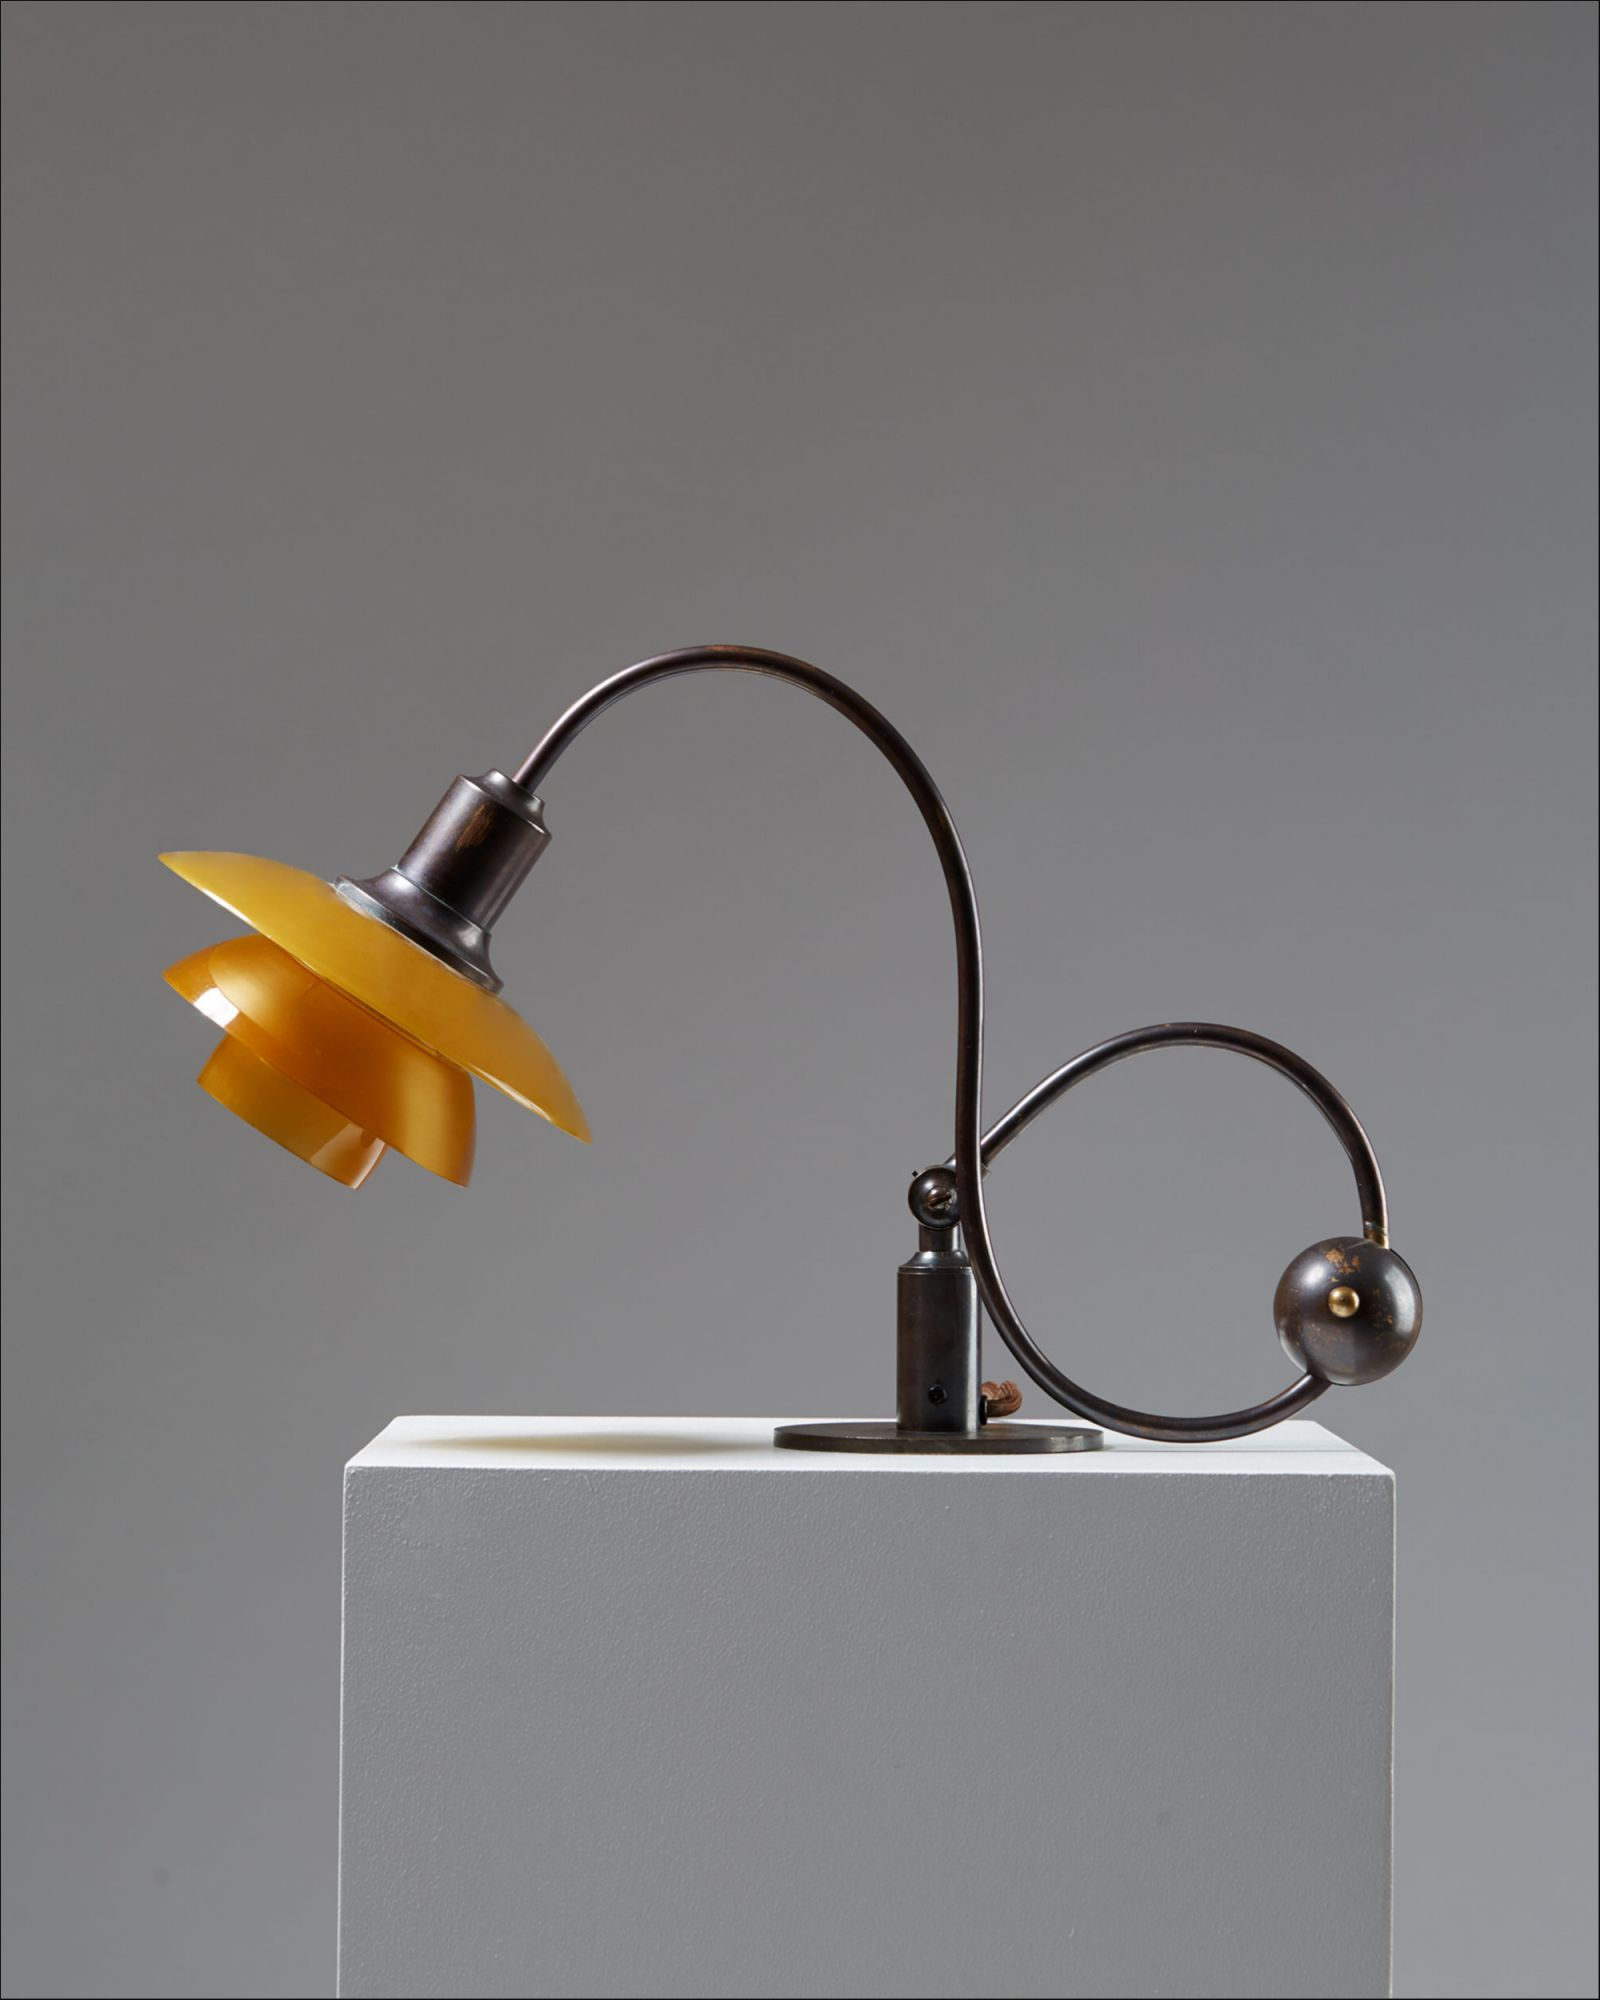 Poul Henningsen Lampe Adjustable Piano Lamp Ph 2 2 By Poul Henningsen For Louis Poulsen